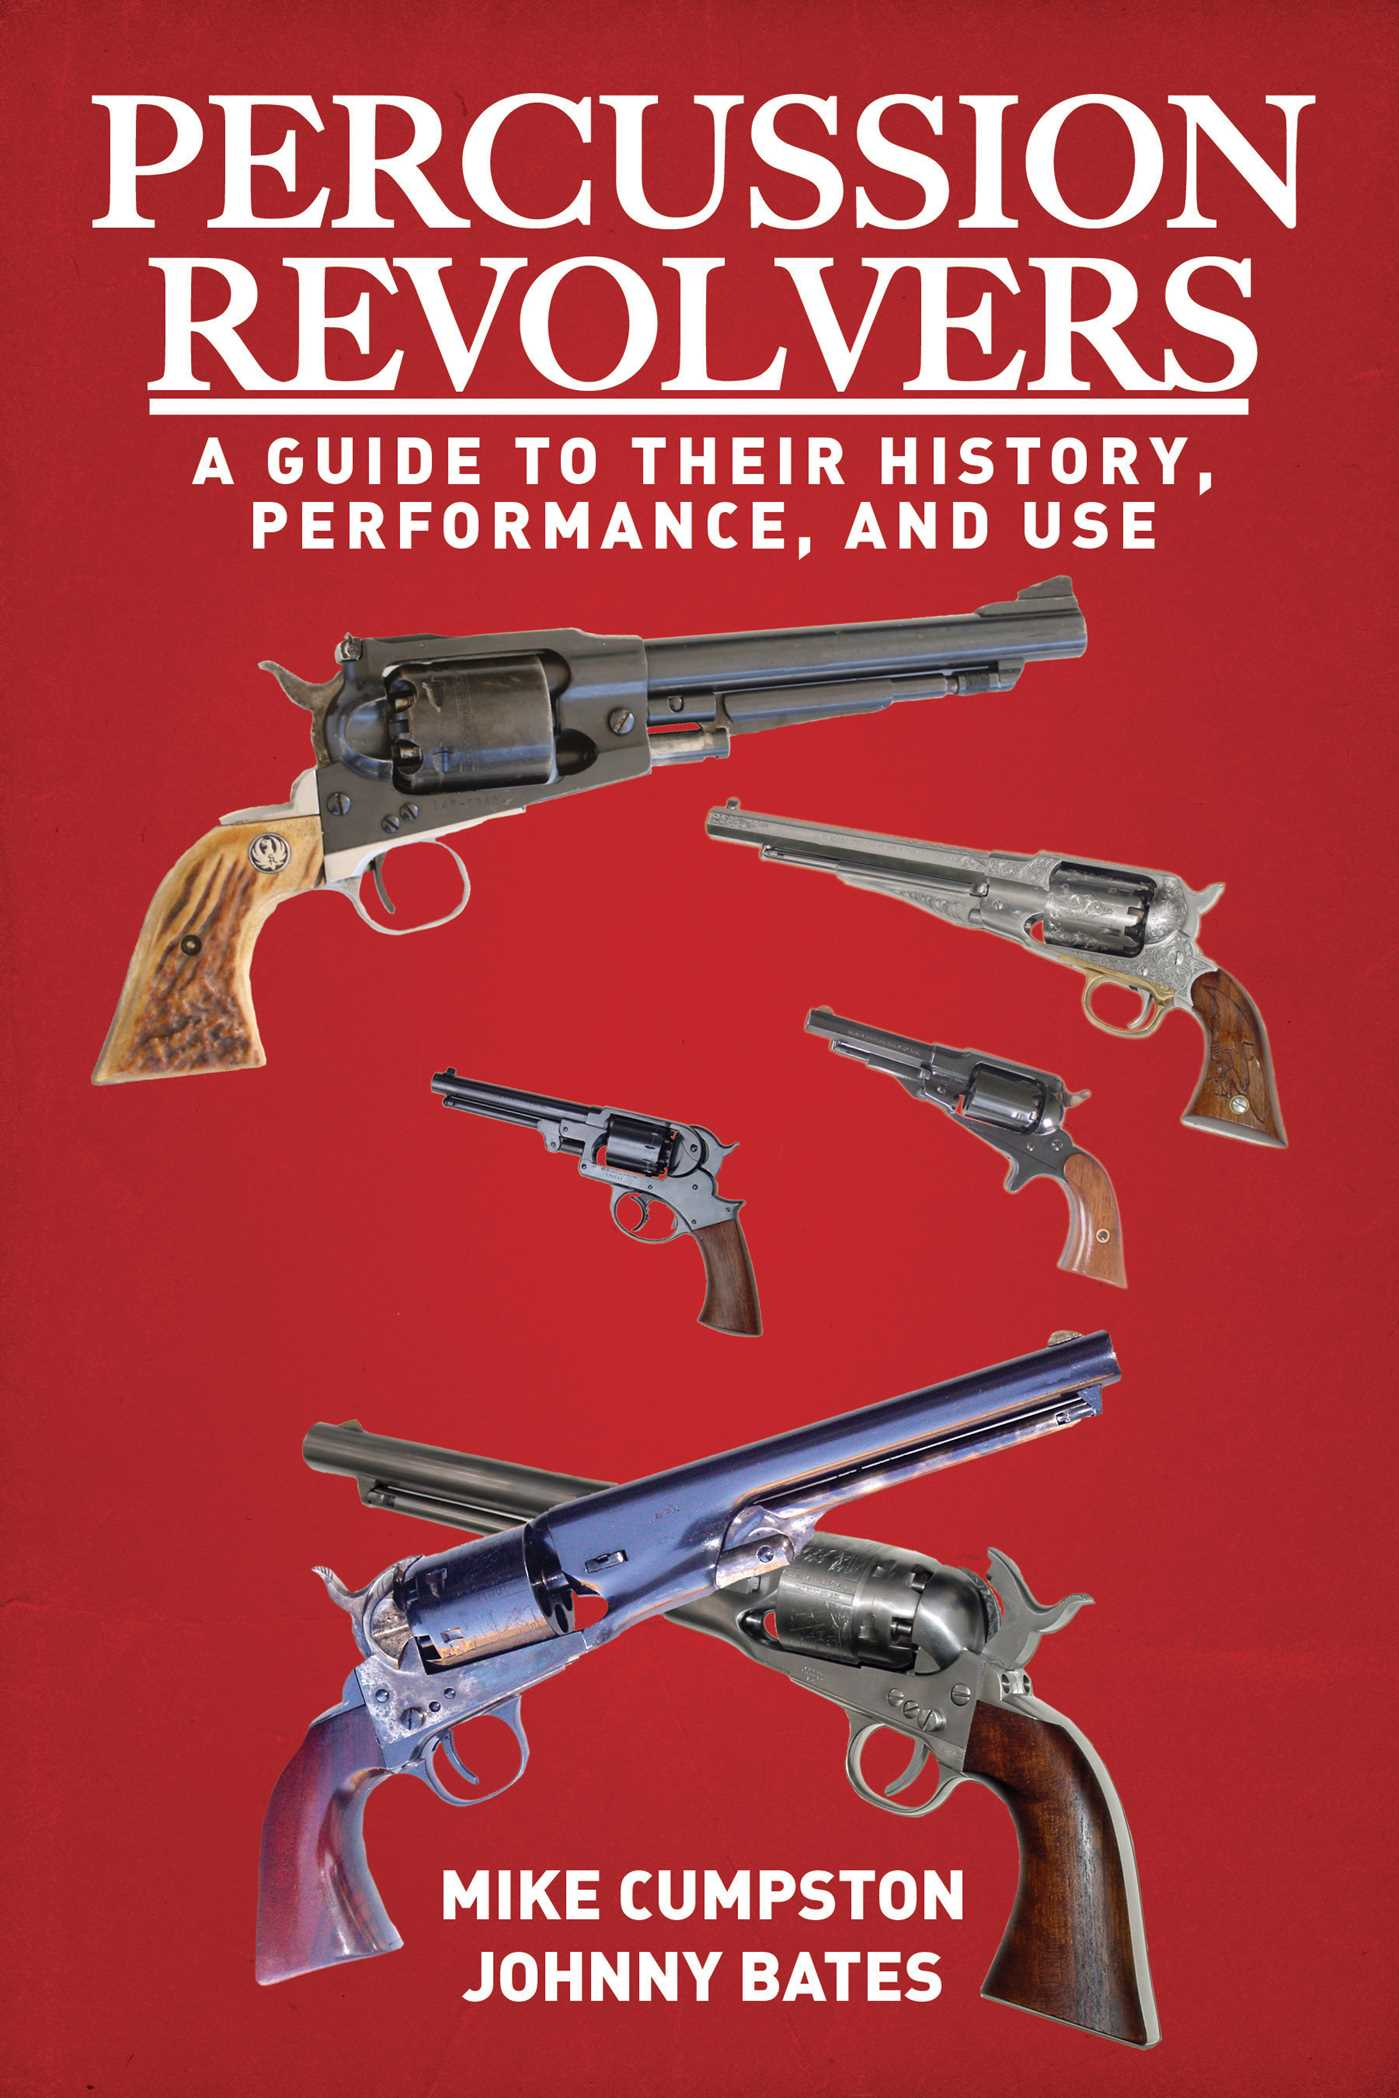 Percussion Revolvers | Book by Mike Cumpston, Johnny Bates